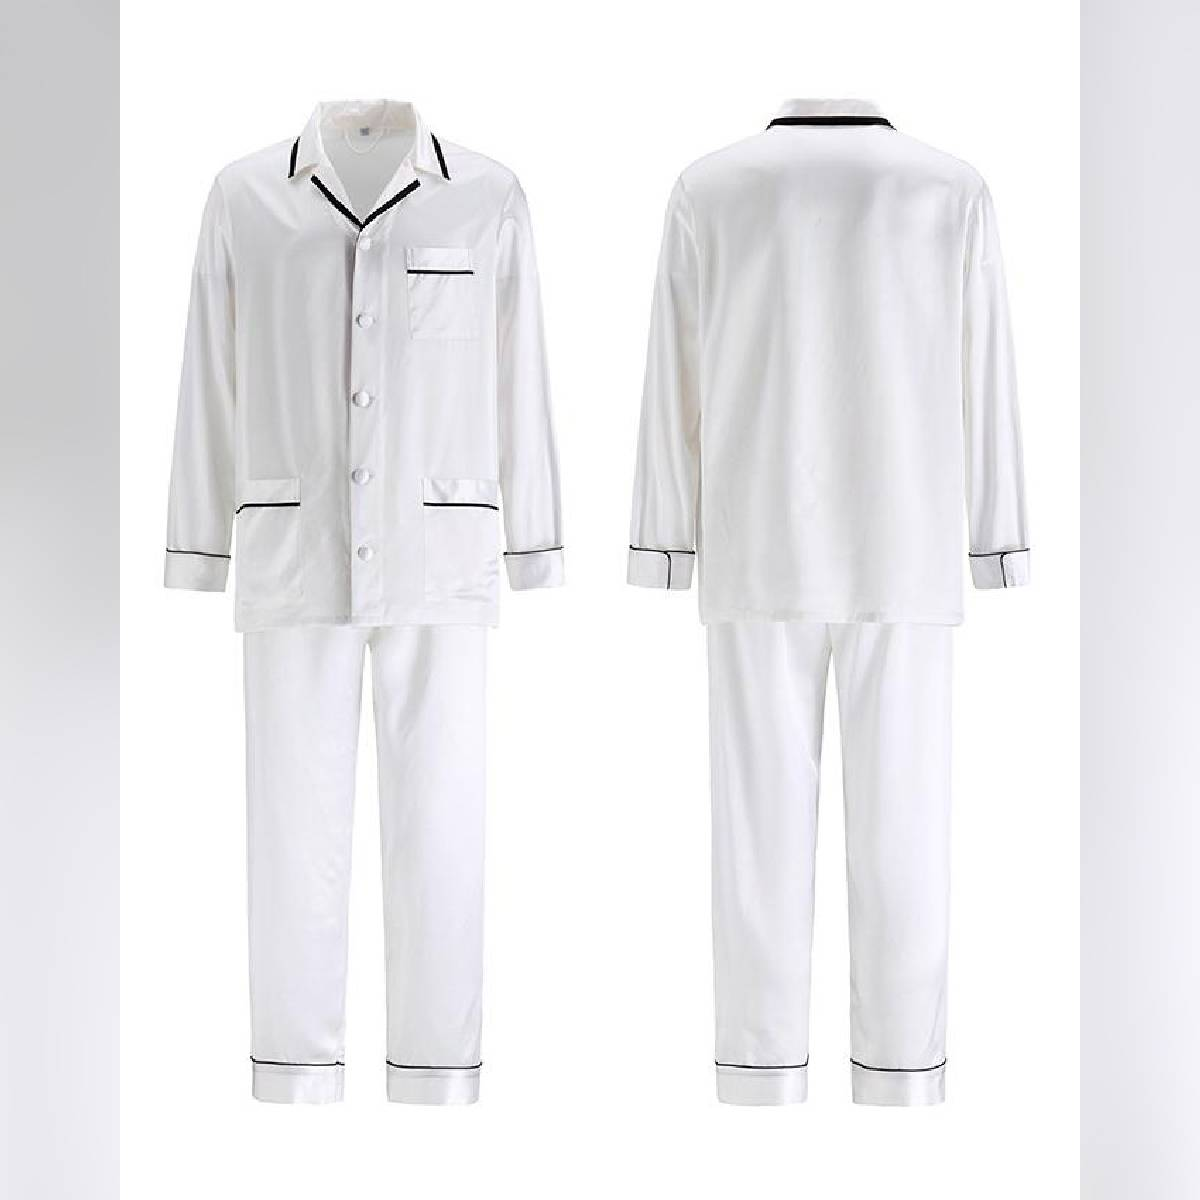 Sebastian Pajama set great for wearing around the house or to bed Sleepwear